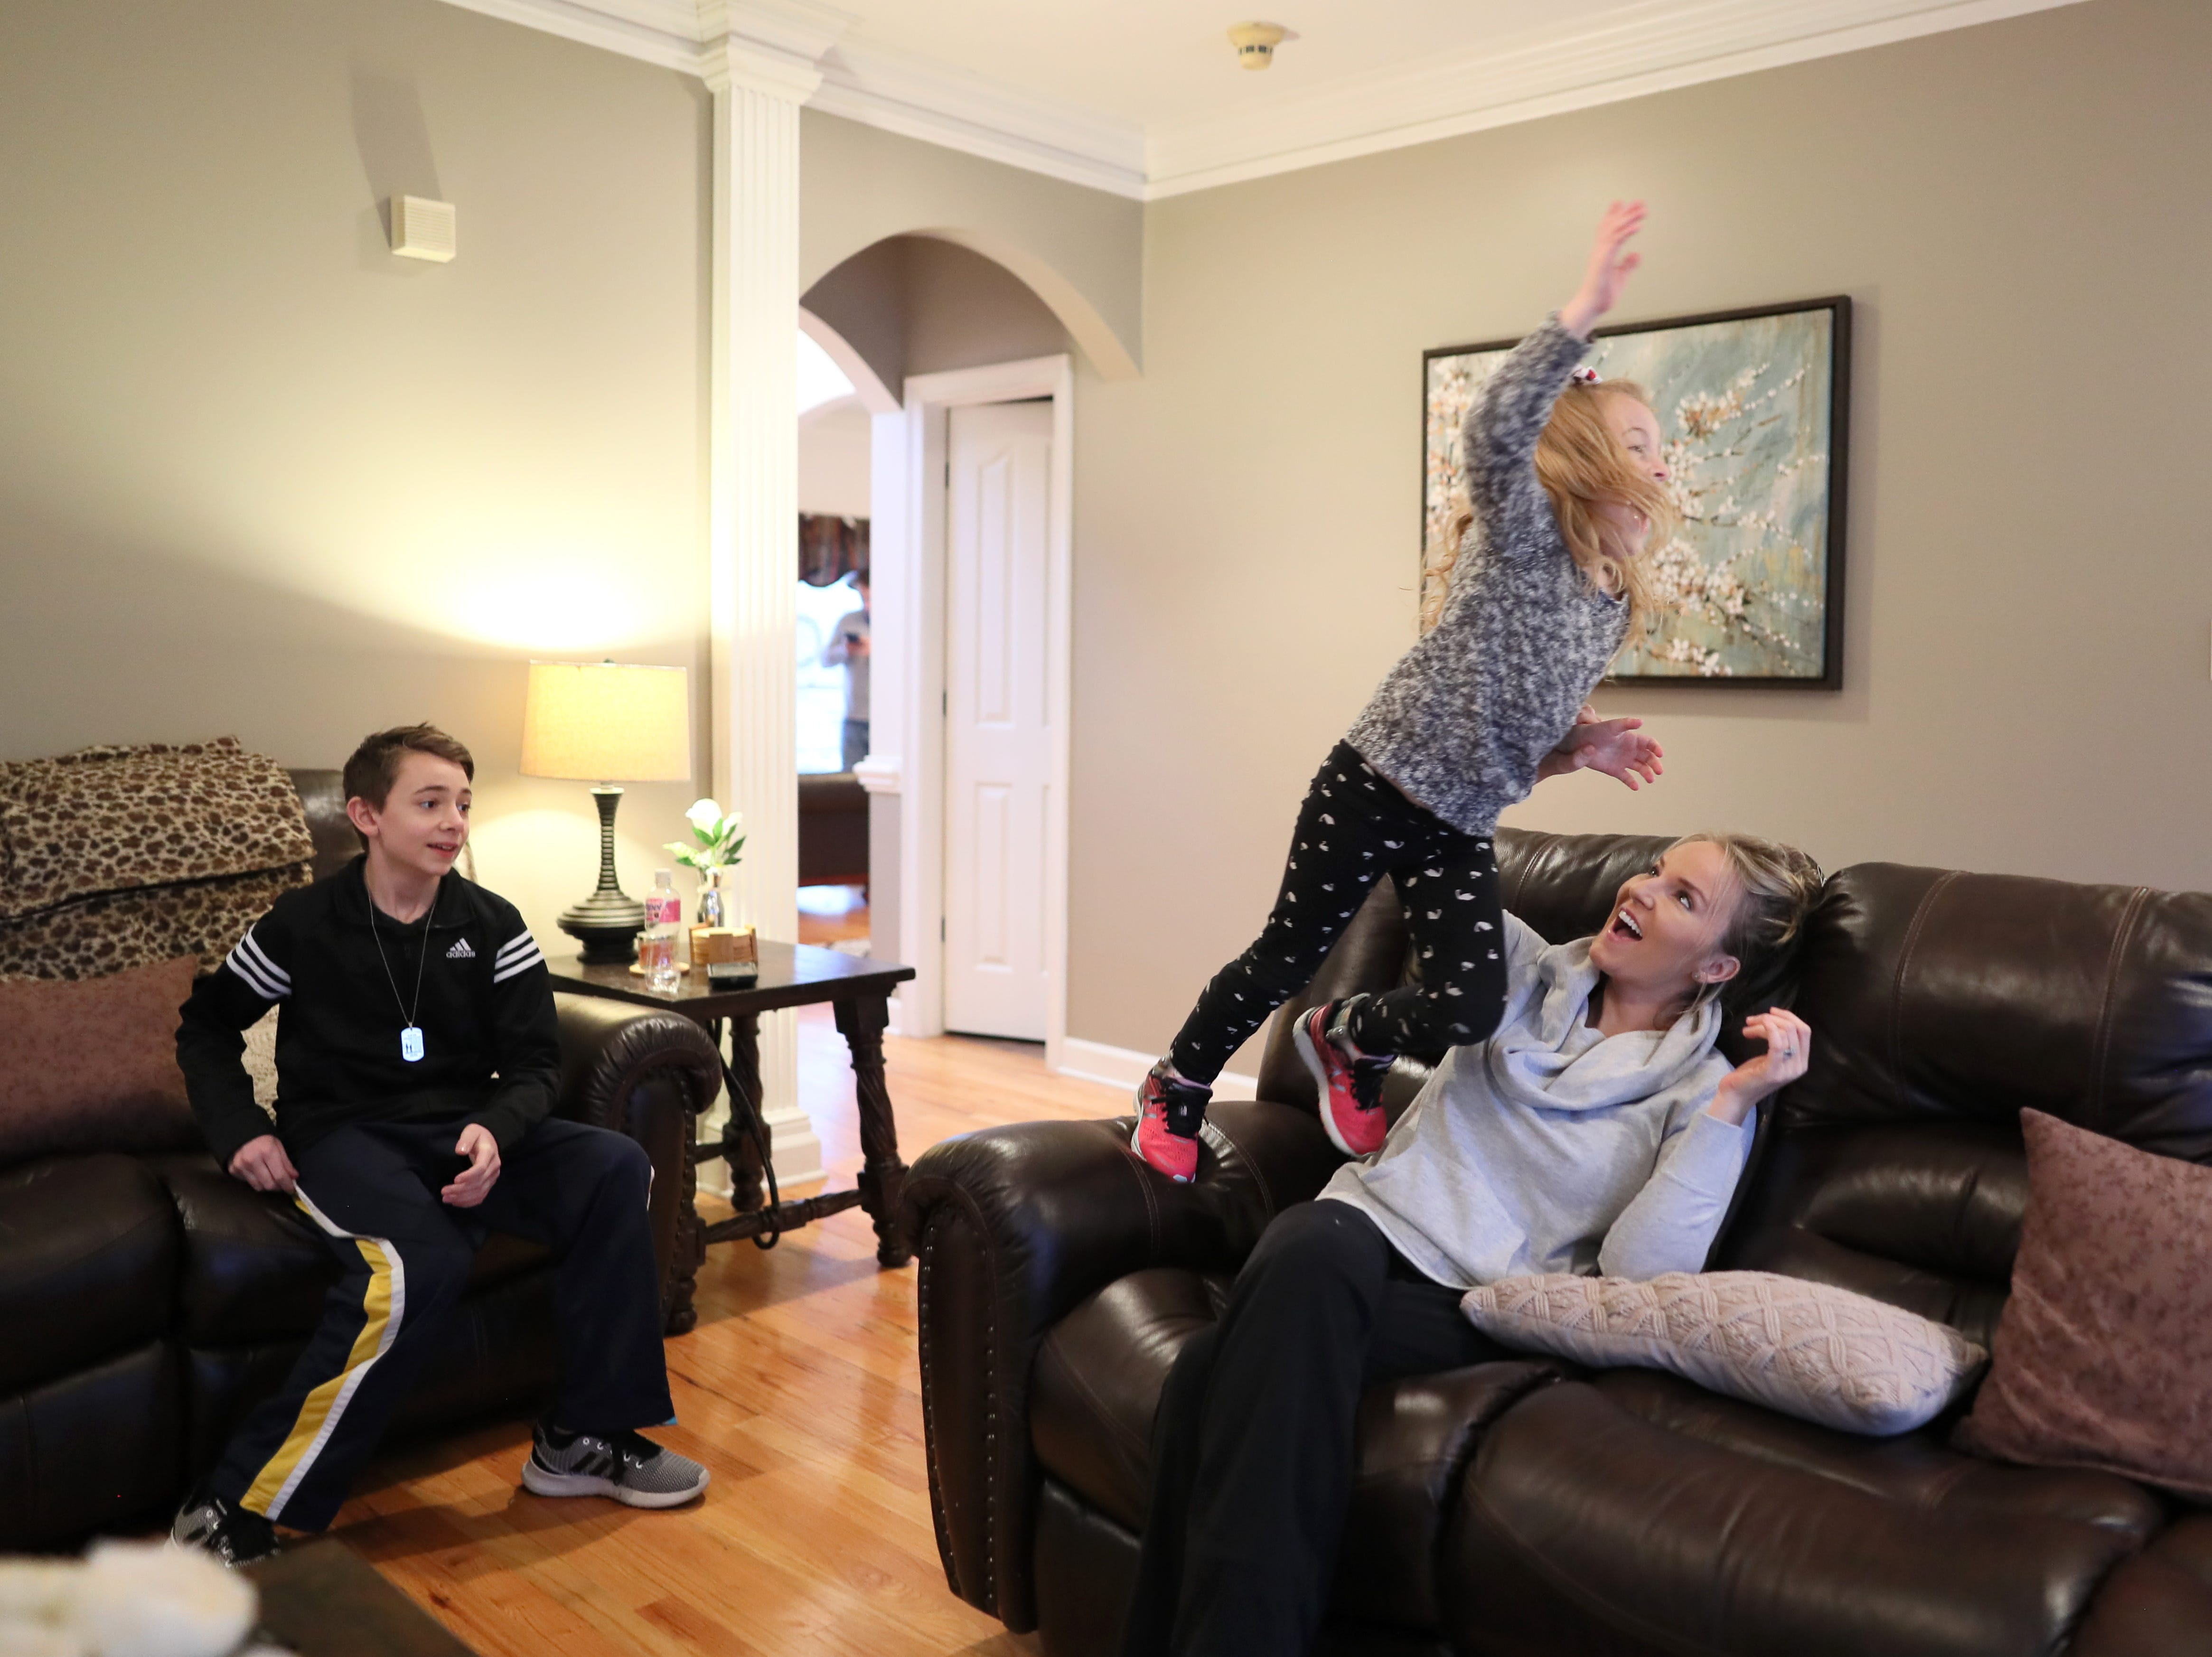 """Mom, watch me fly,"" says Ava, 6, to her mother Karon Reed as she leaps off the arm of the couch while her brother Aiden, 12, watches at the family home on Friday, Jan. 11, 2019. Though Ava lives with Charcot-Marie-Tooth Disease, she is an active 6-year-old with an adventuresome spirit."